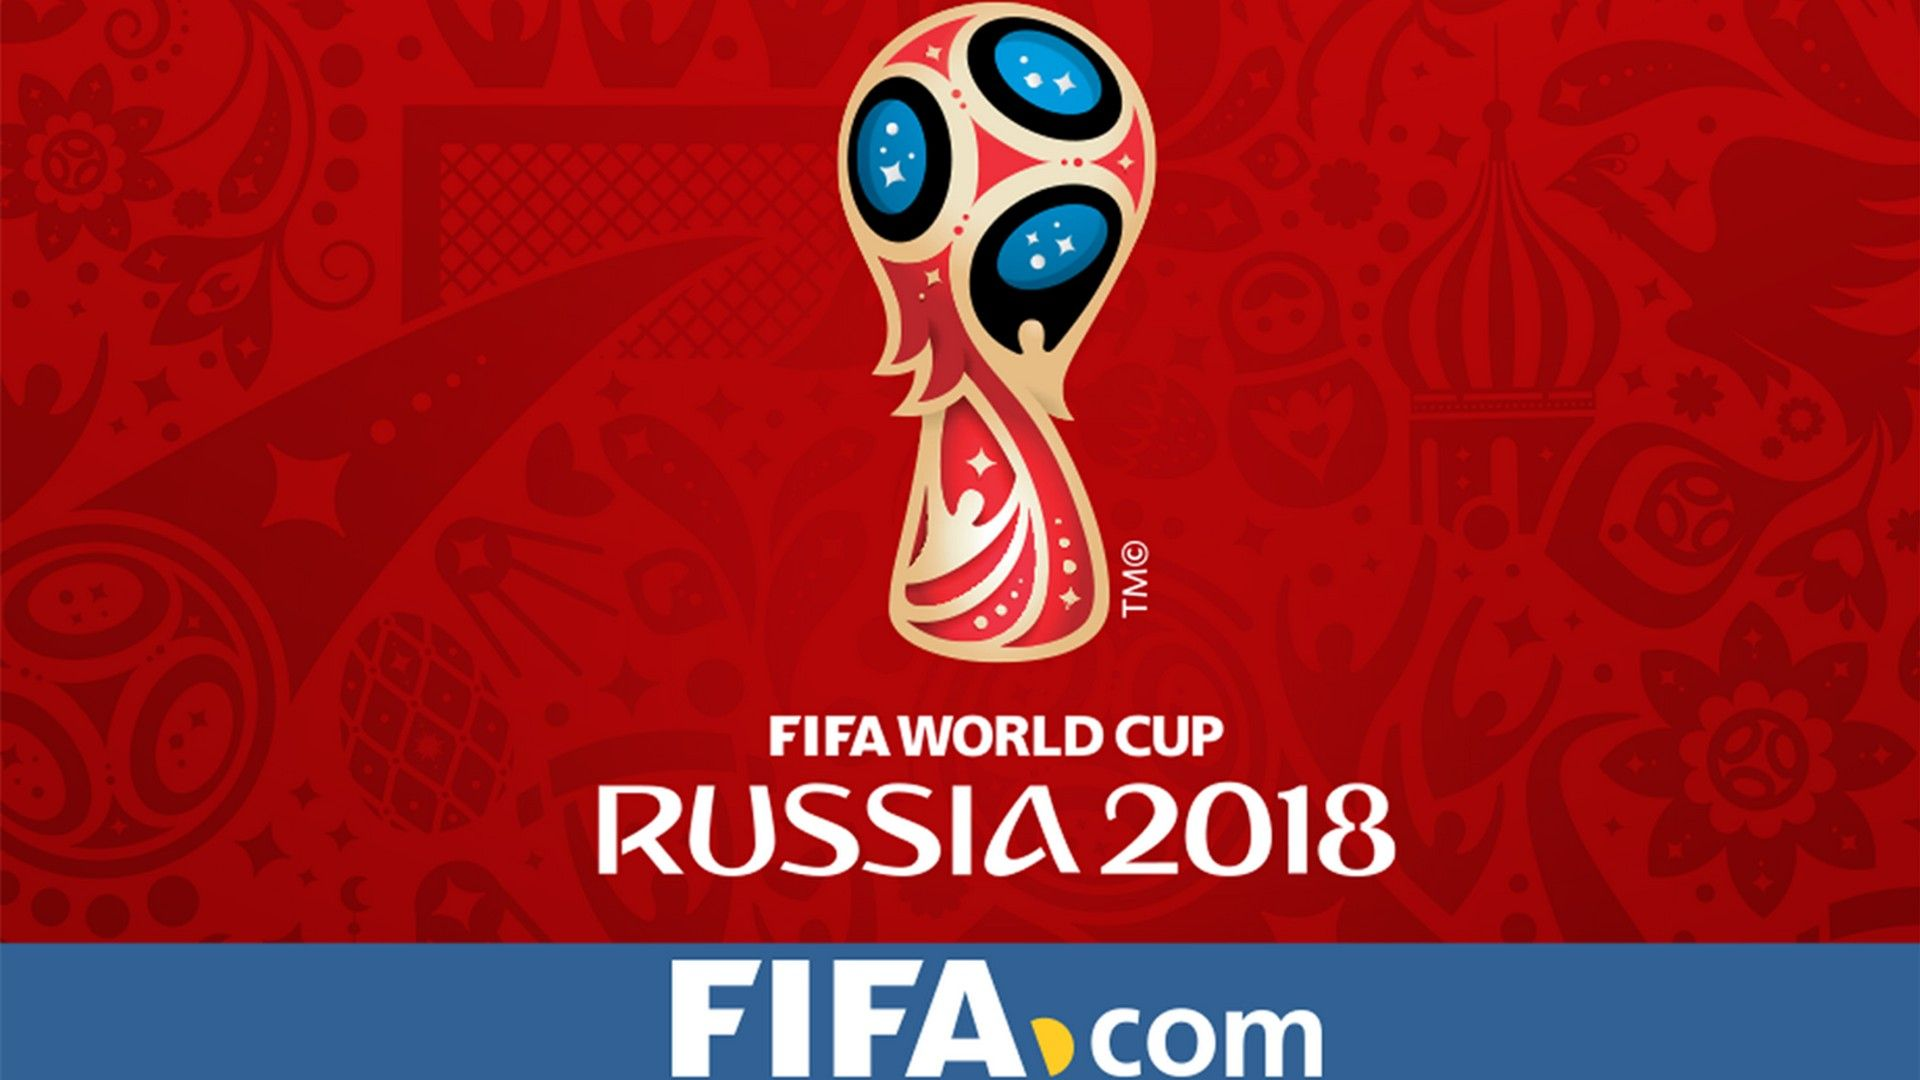 Wallpaper Hd Fifa World Cup World Cup Logo Russia World Cup